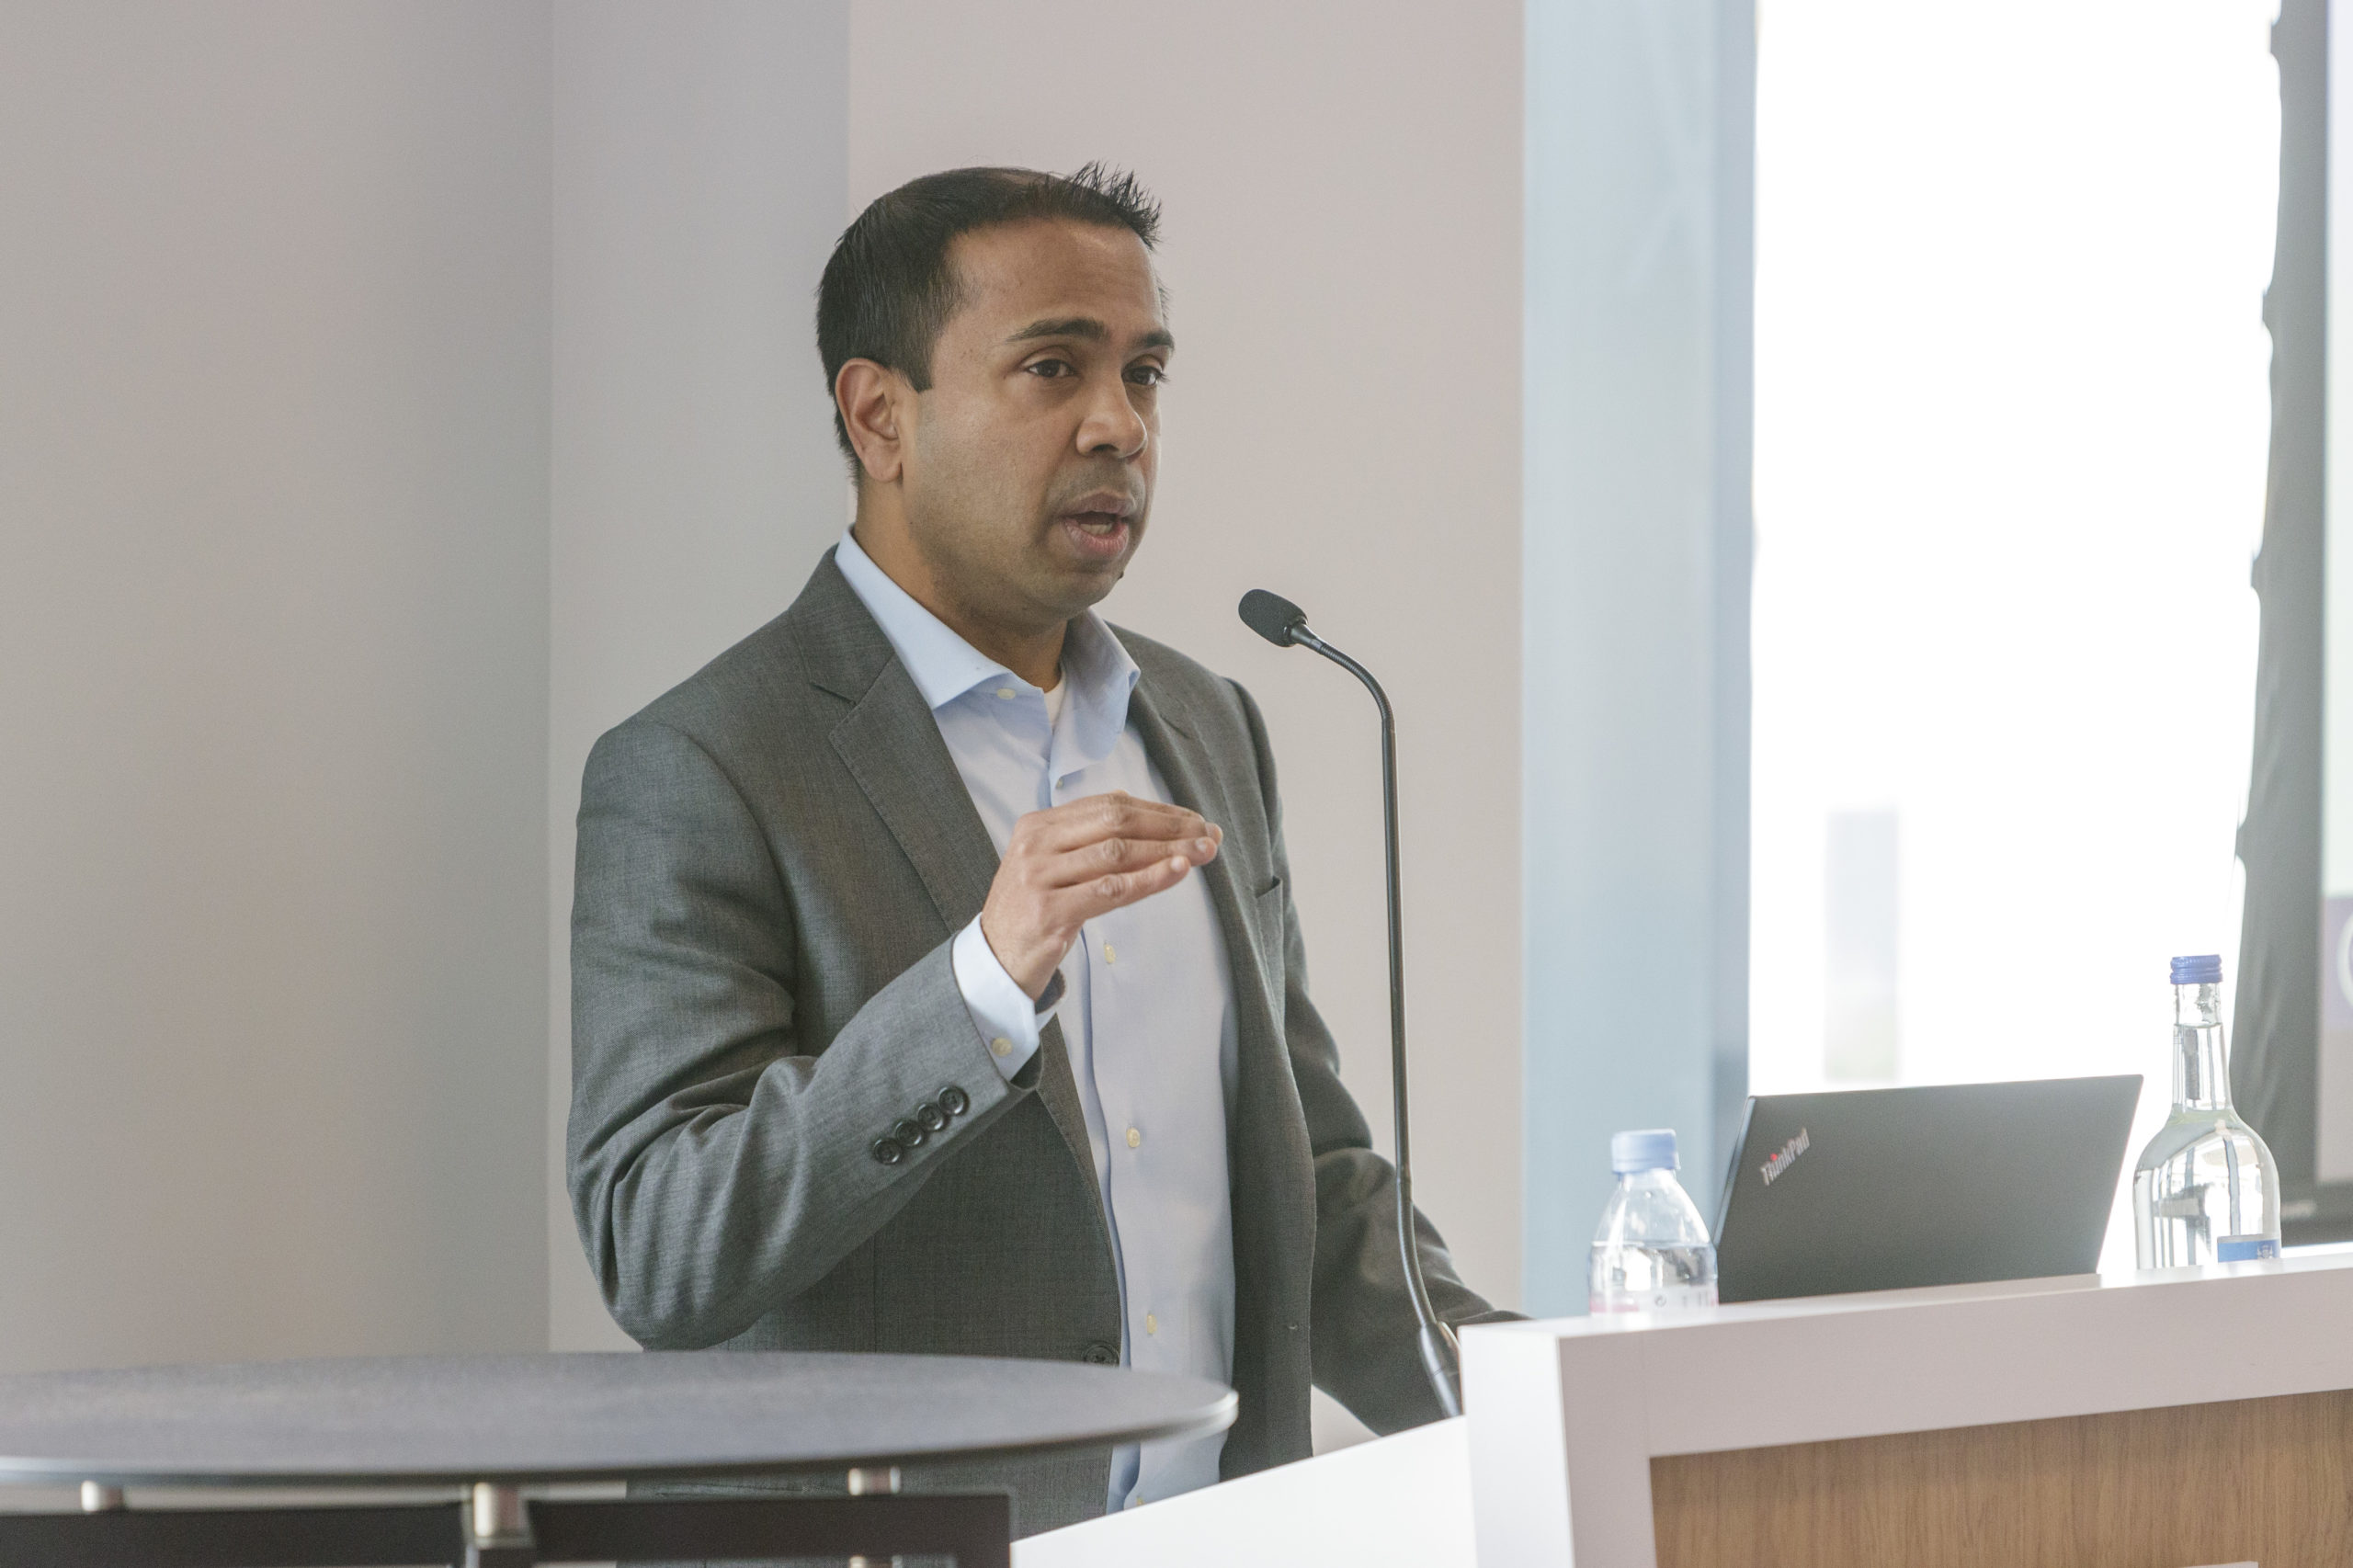 Arindam Das, group head of consulting at Westwood Global, was speaking alongside colleague Dominic Stirling at Subsea Expo   (Photo: Ross Johnston/Newsline Media)